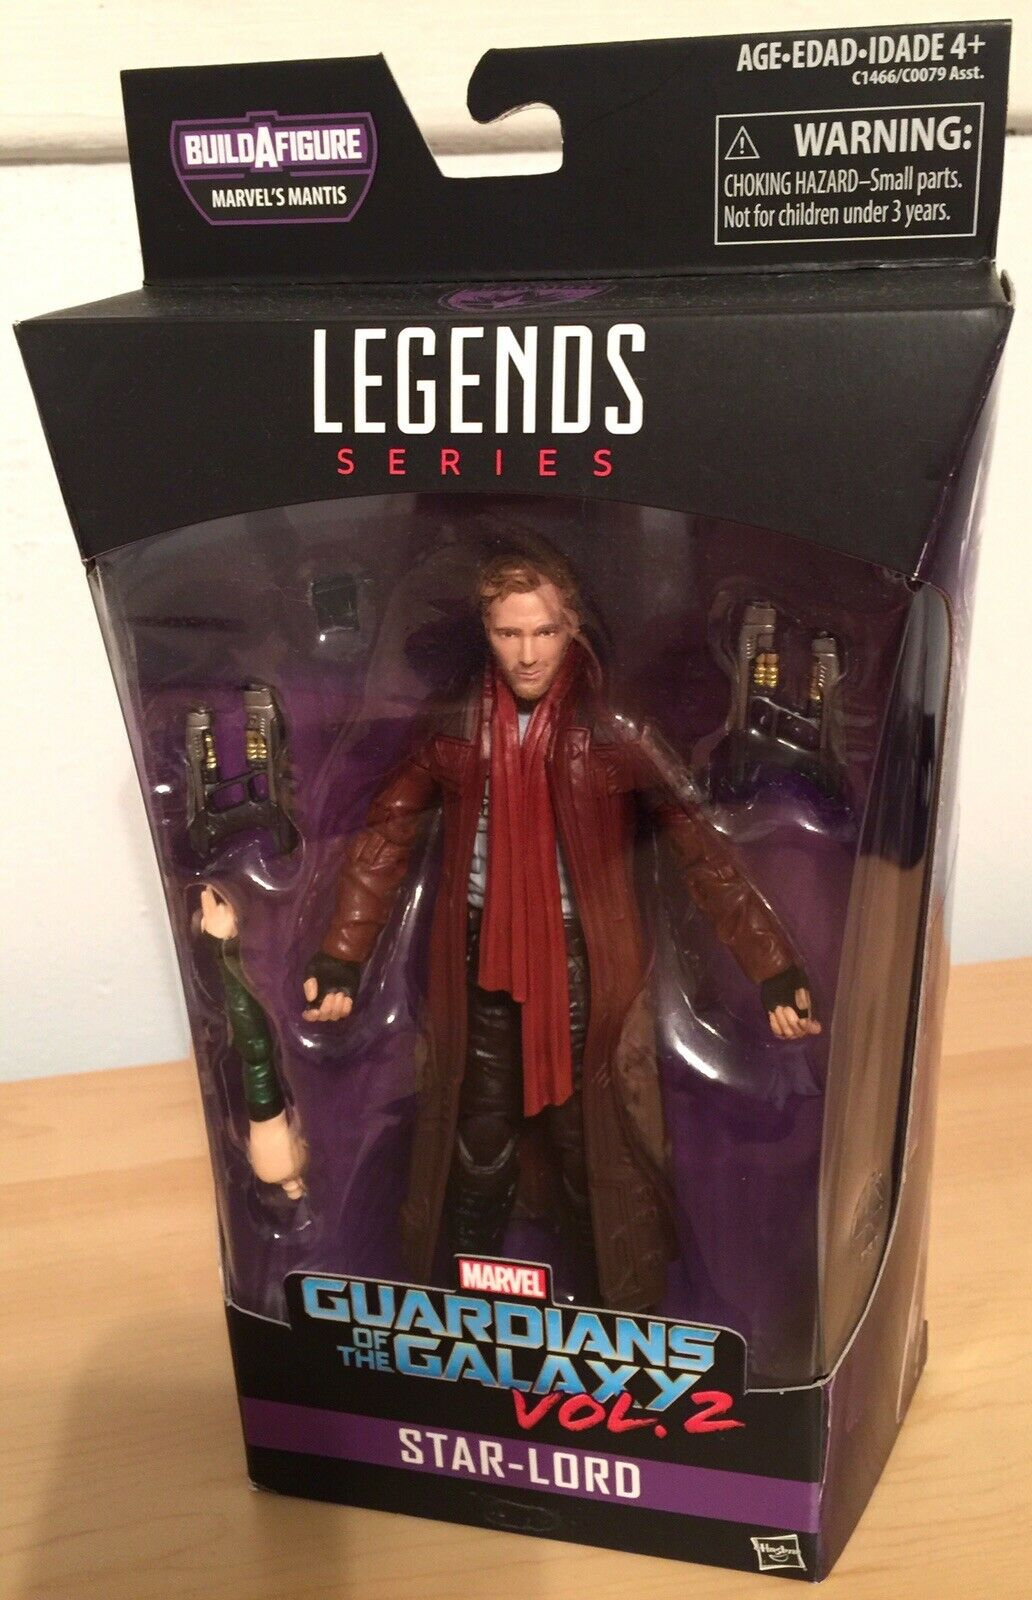 Marvel Marvel Marvel Legends Star-Lord Action Figure NIB Great Condition  1a18a0